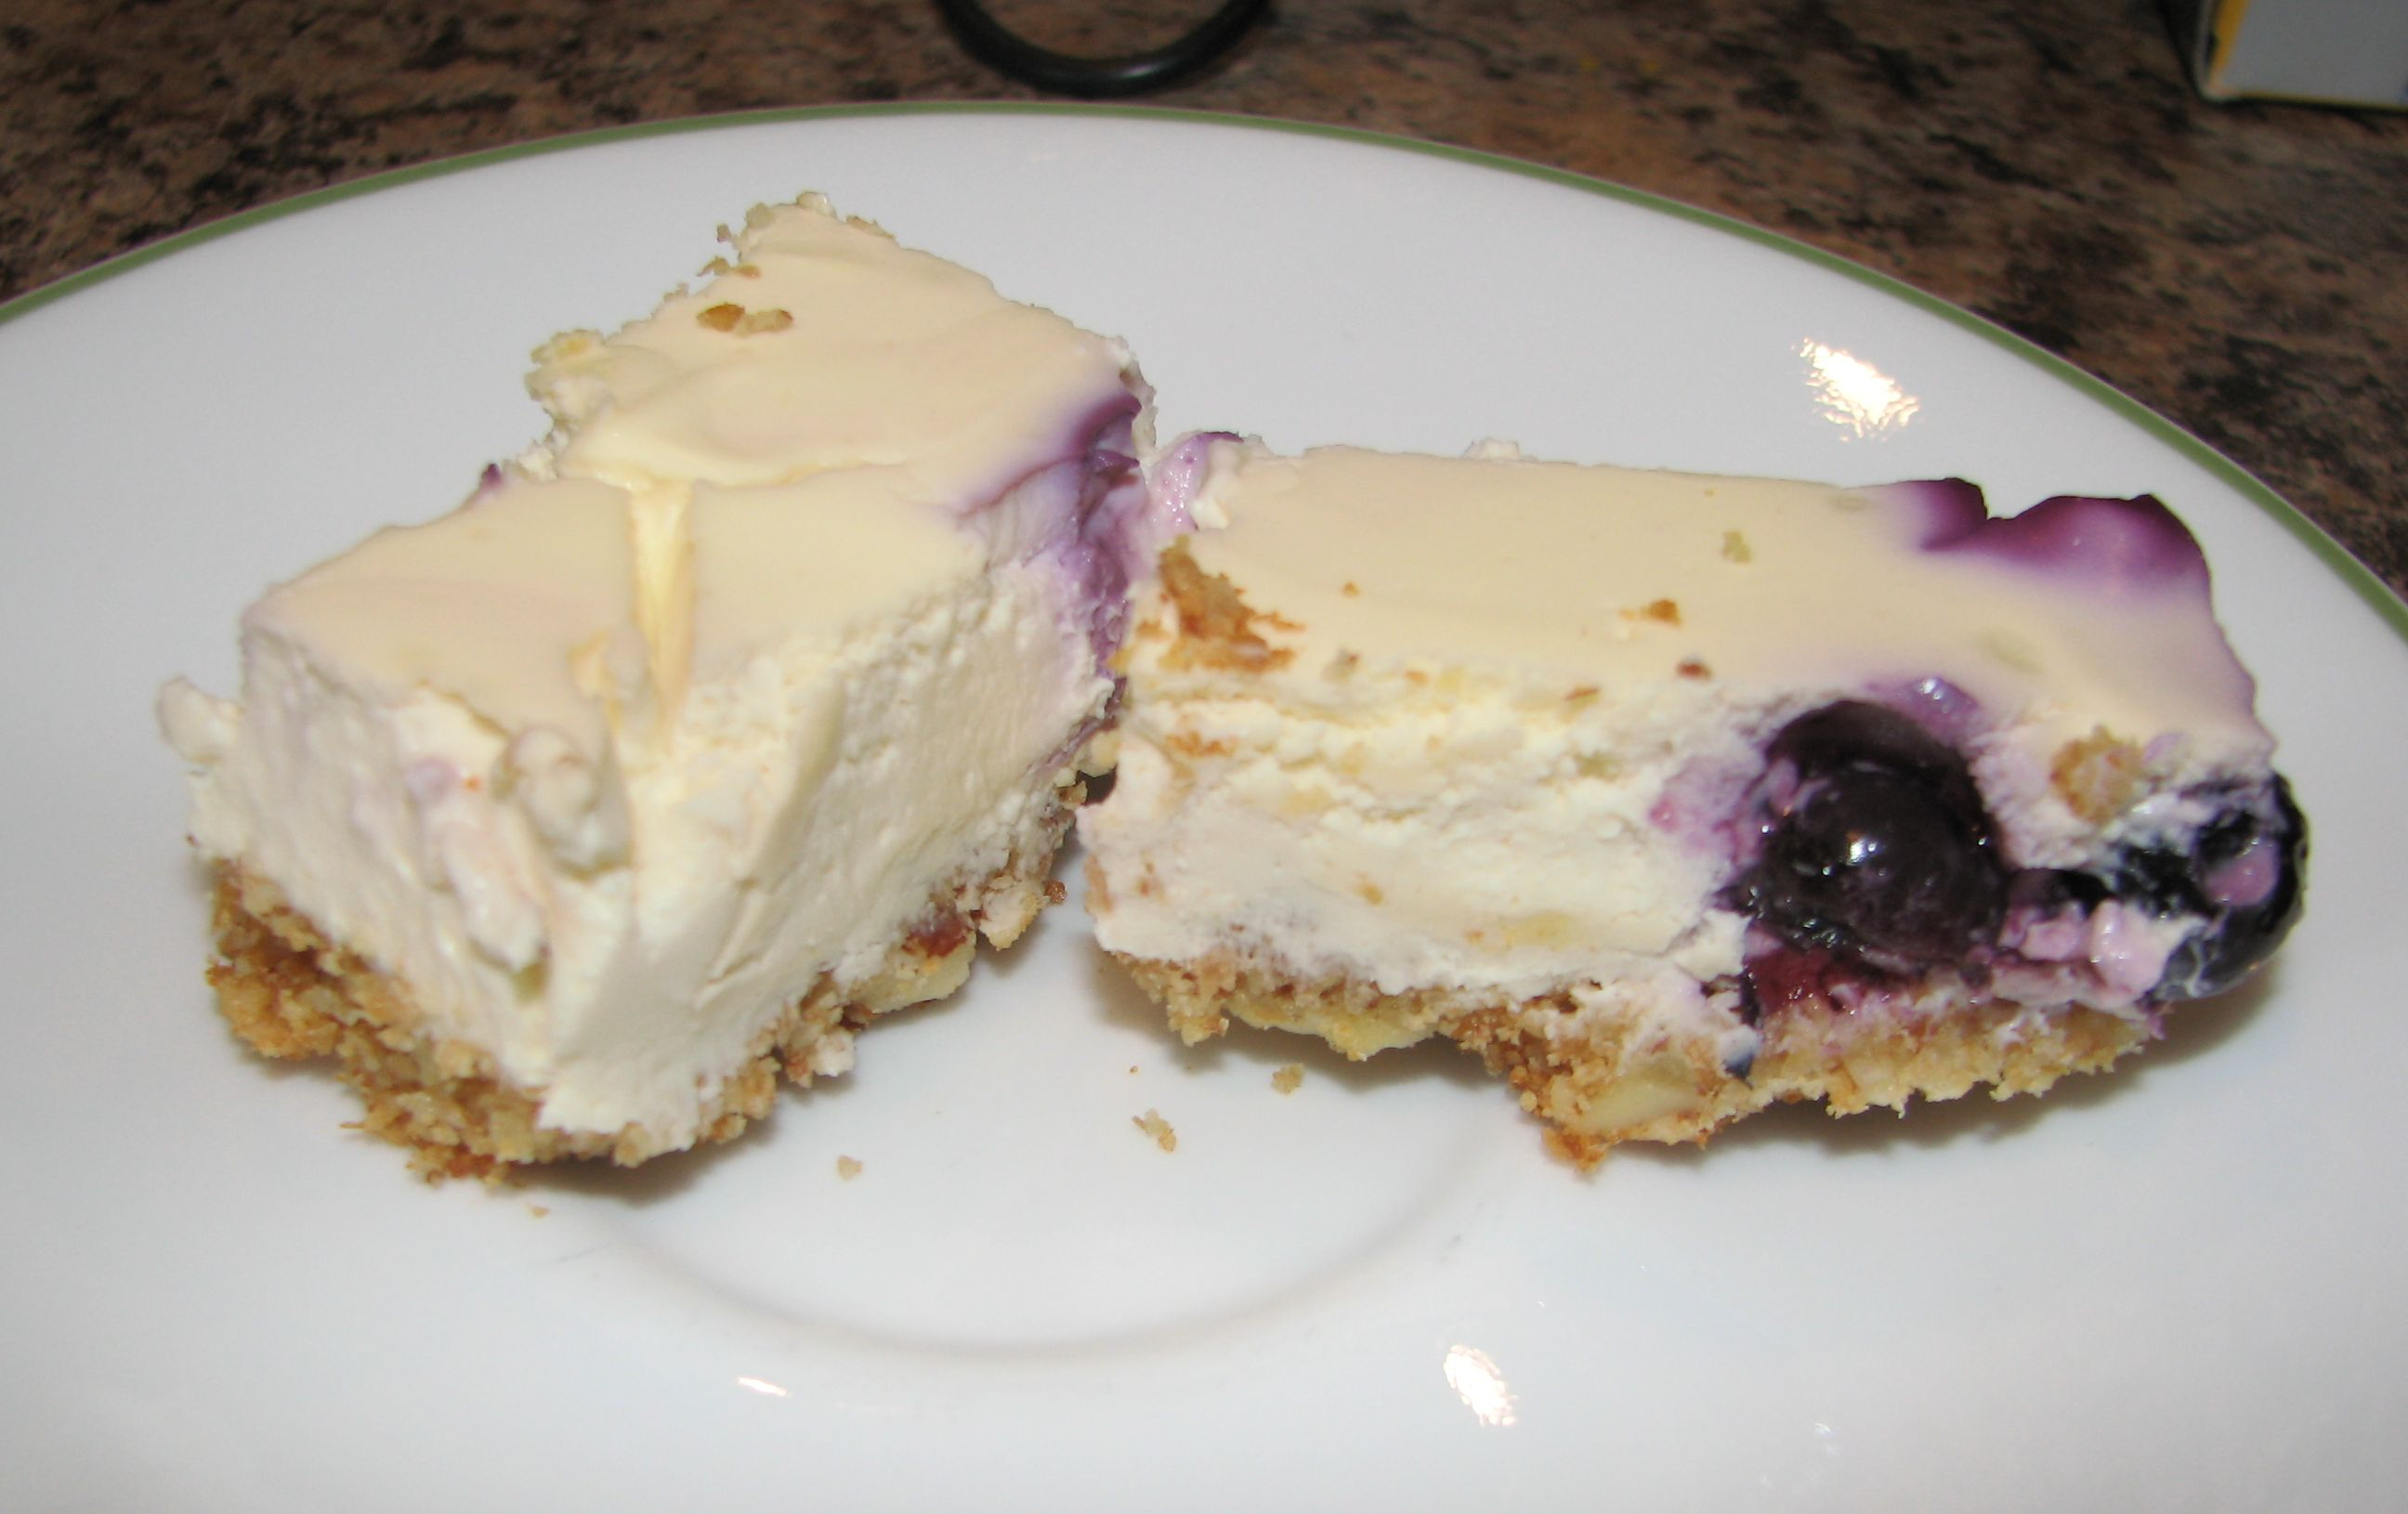 Atkins Low Carb Cake Recipes: Low Carb Blueberry Cheesecake Bars « Atkins Diet Geek Blog